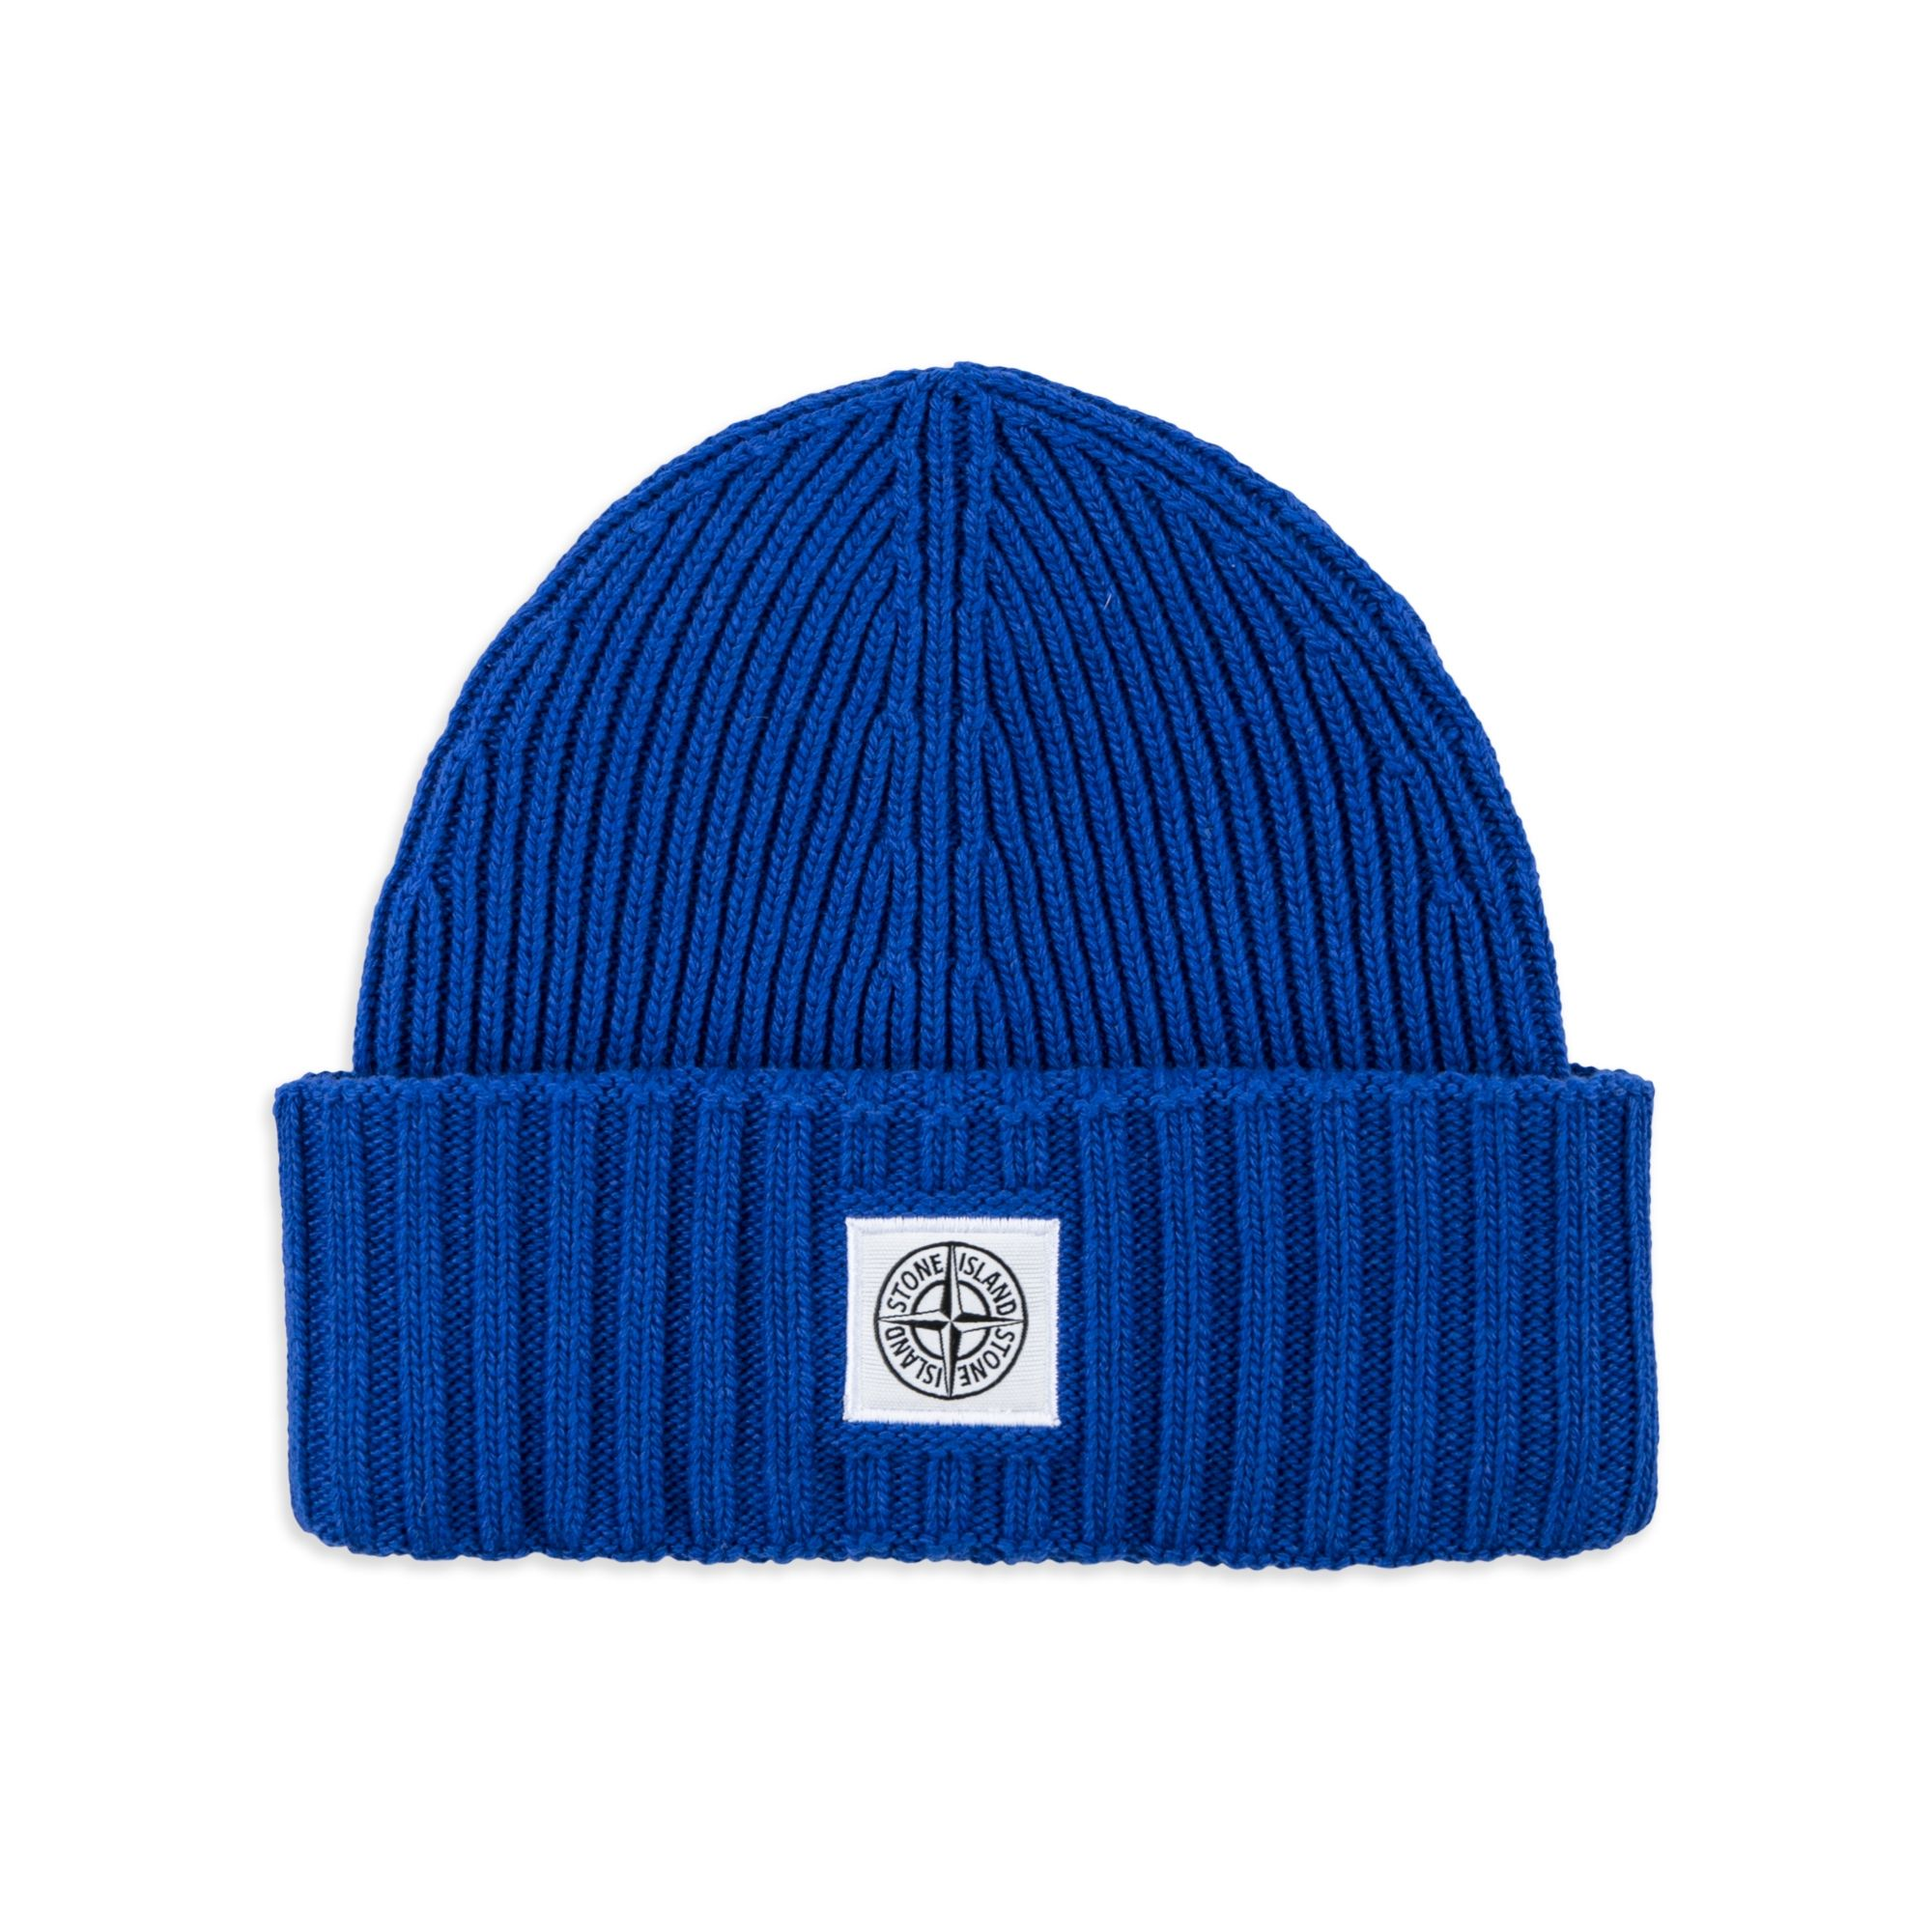 STONE ISLAND JUNIOR Boys Wool Compass Beanie - Bright Blue Boys beanie hat  • Soft wool blend • Turn up brim • Thick ribbed knit • Compass logo patch  ... 027c670f986